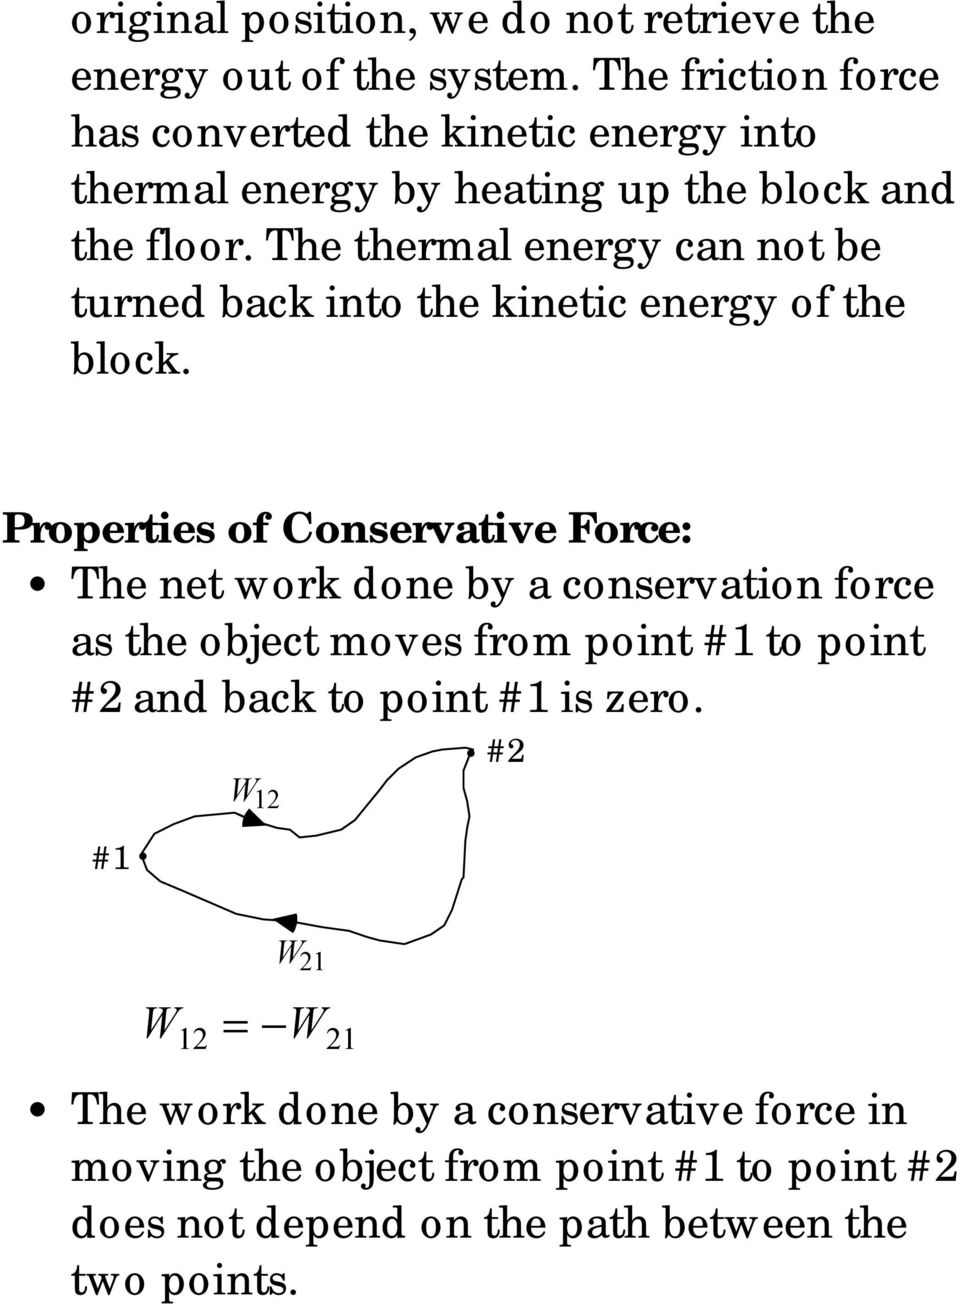 The thermal energy can not be turned back into the kinetic energy of the block.